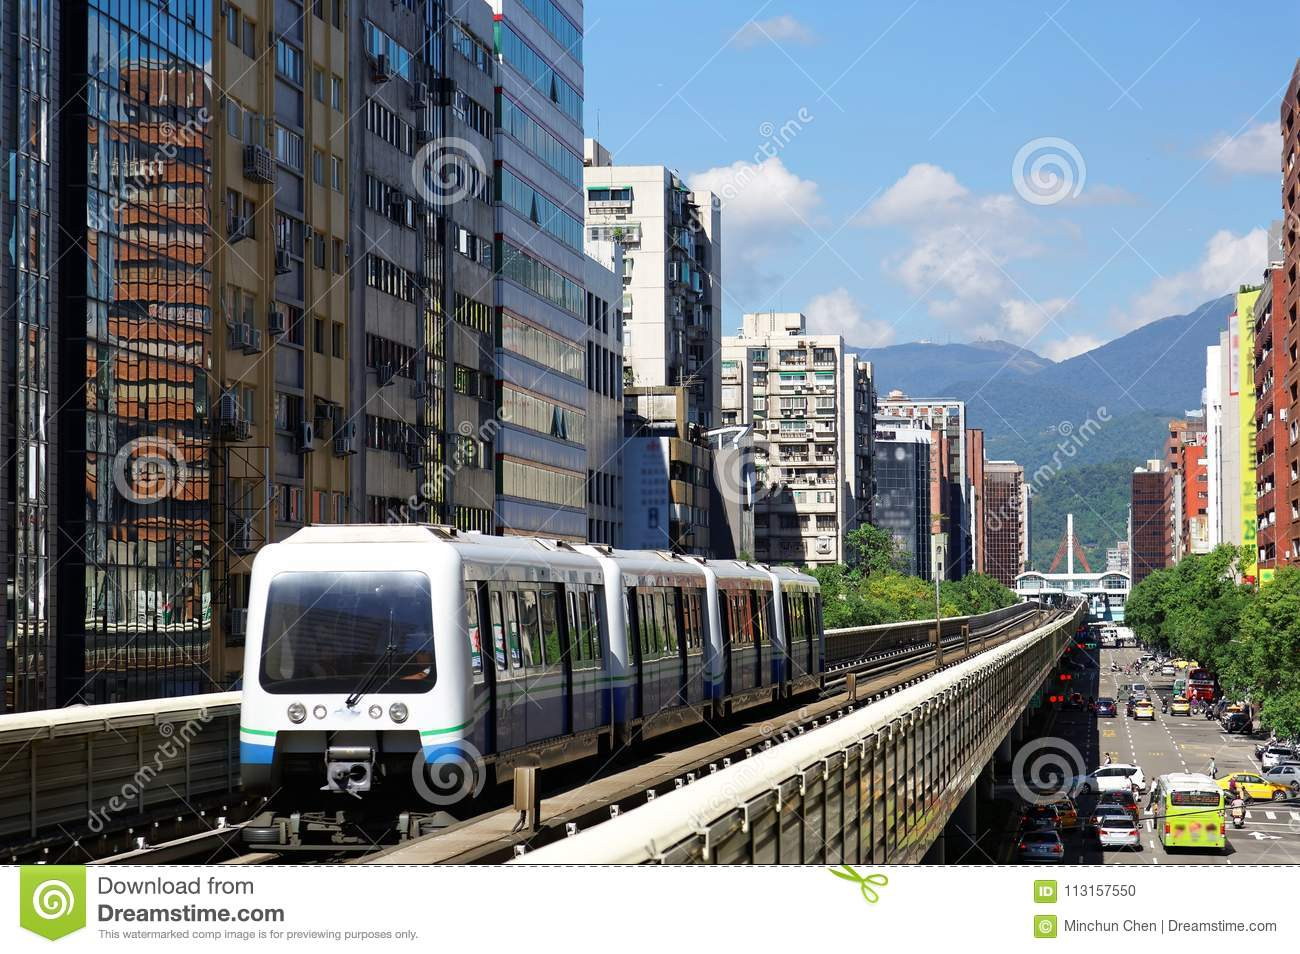 A Metro train travel on elevated rails of Wenhu Line of Taipei MRT System by office towers under blue clear sky